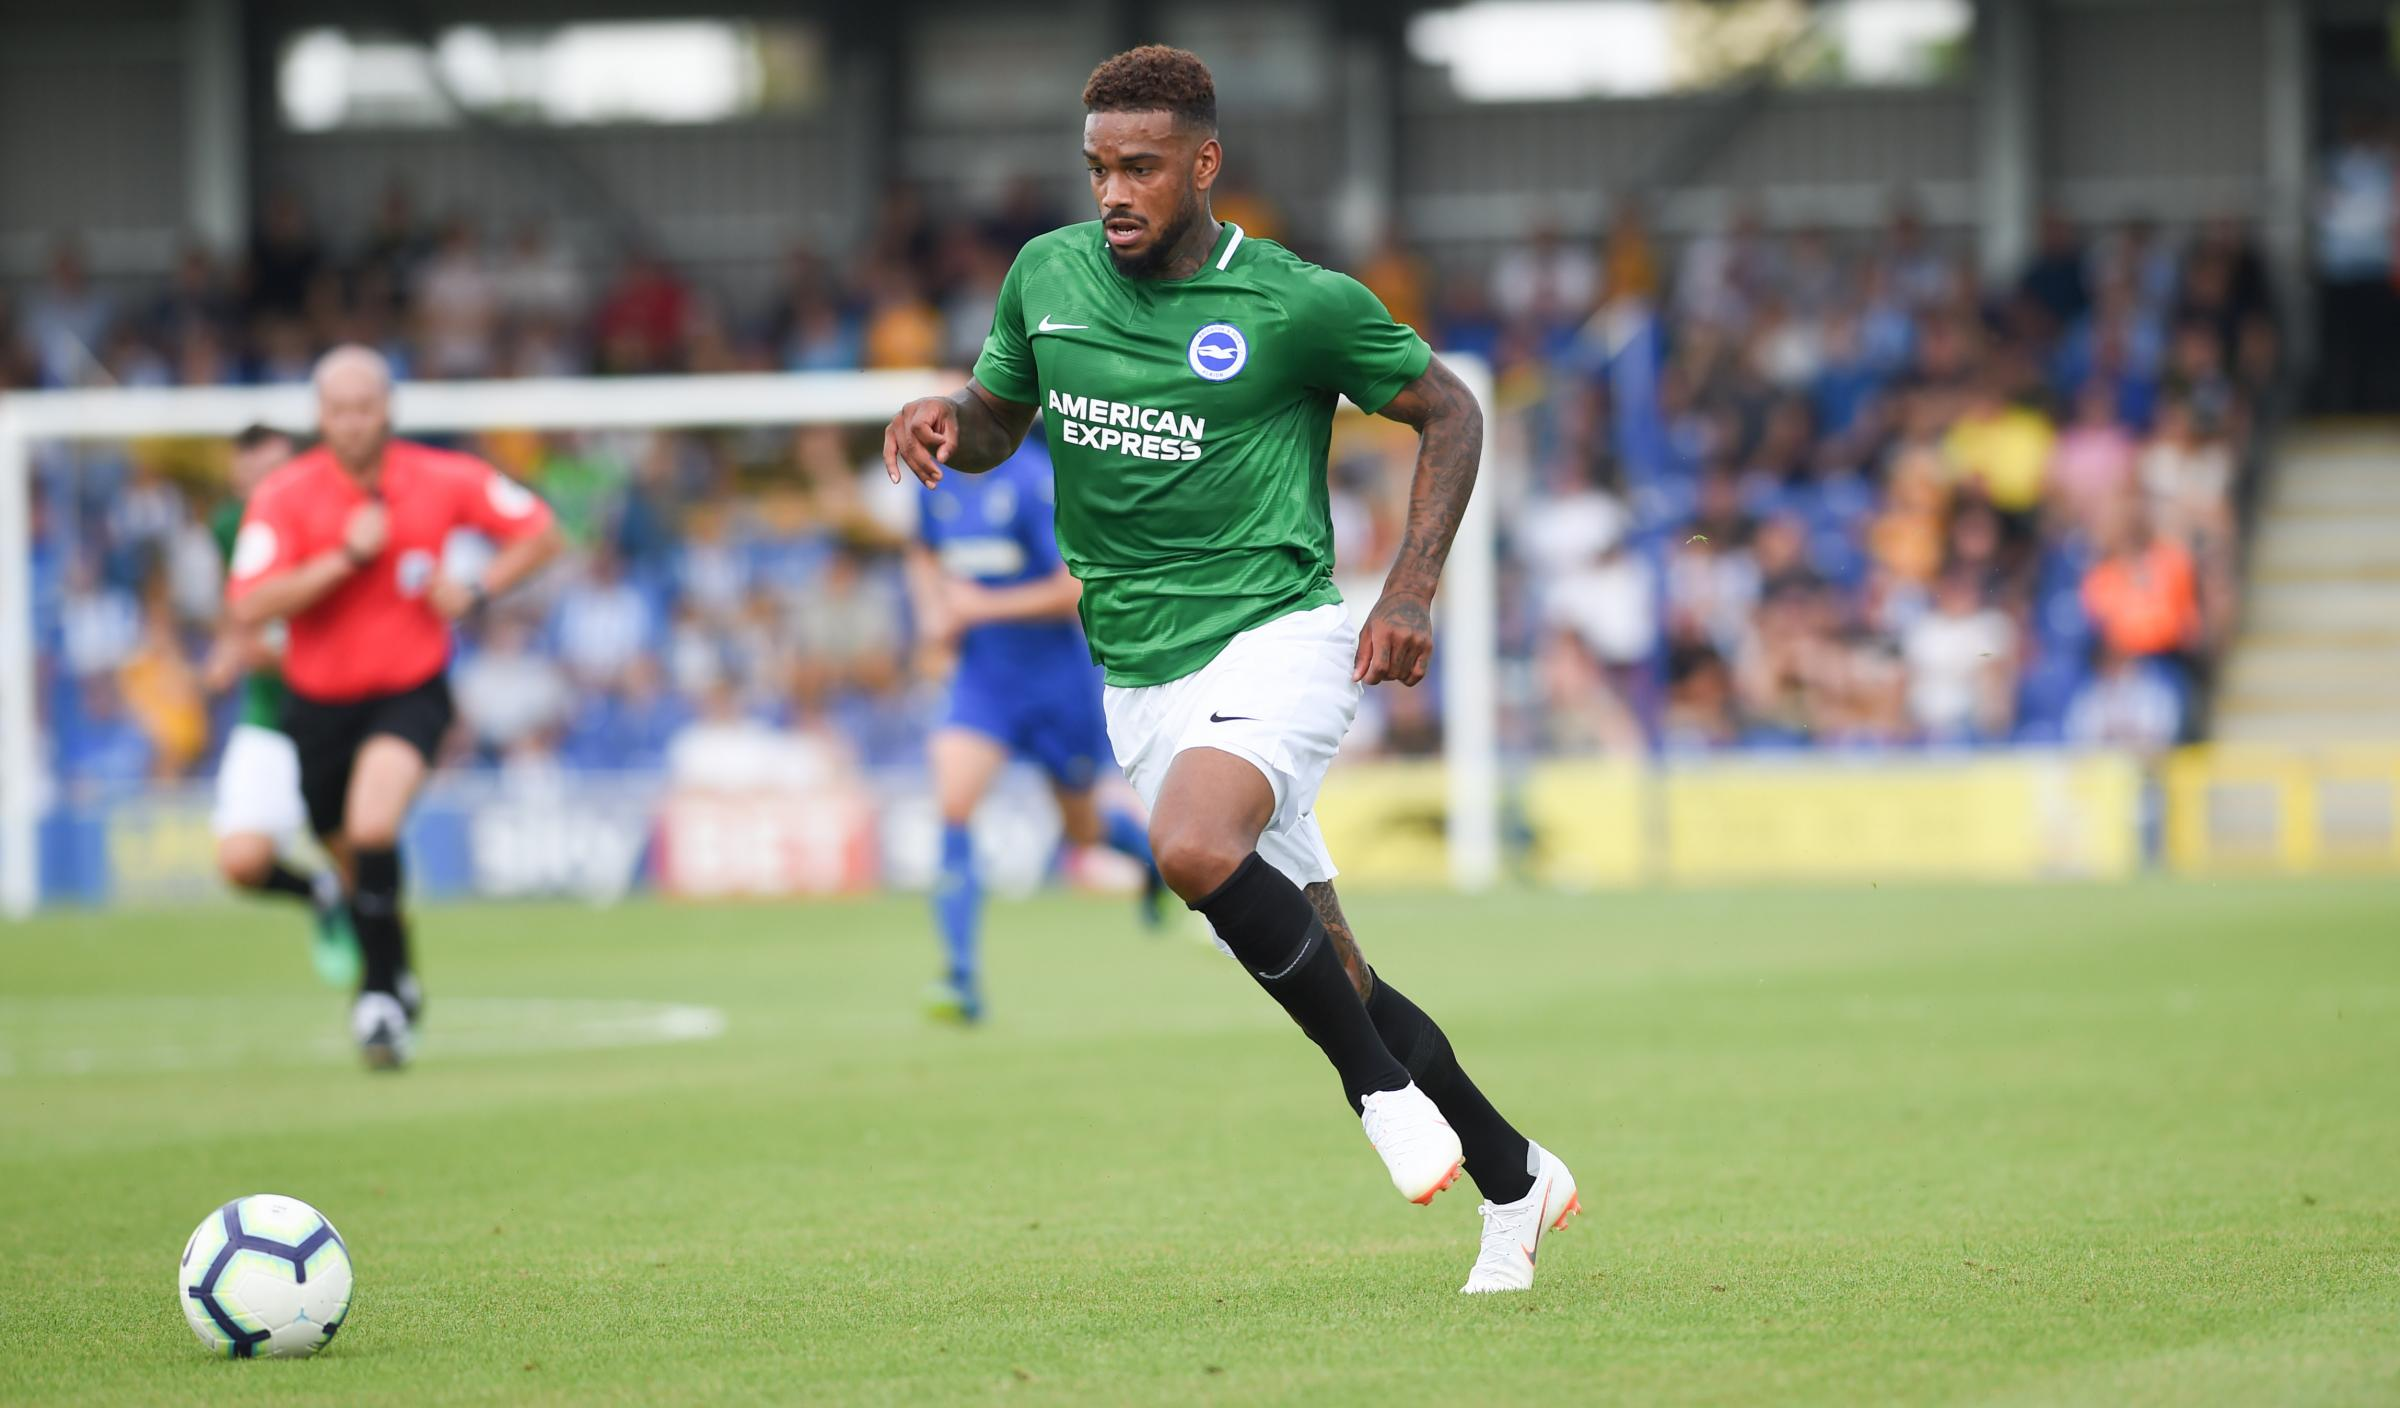 'Angry' Locadia tells Dutch media he needs to leave Albion